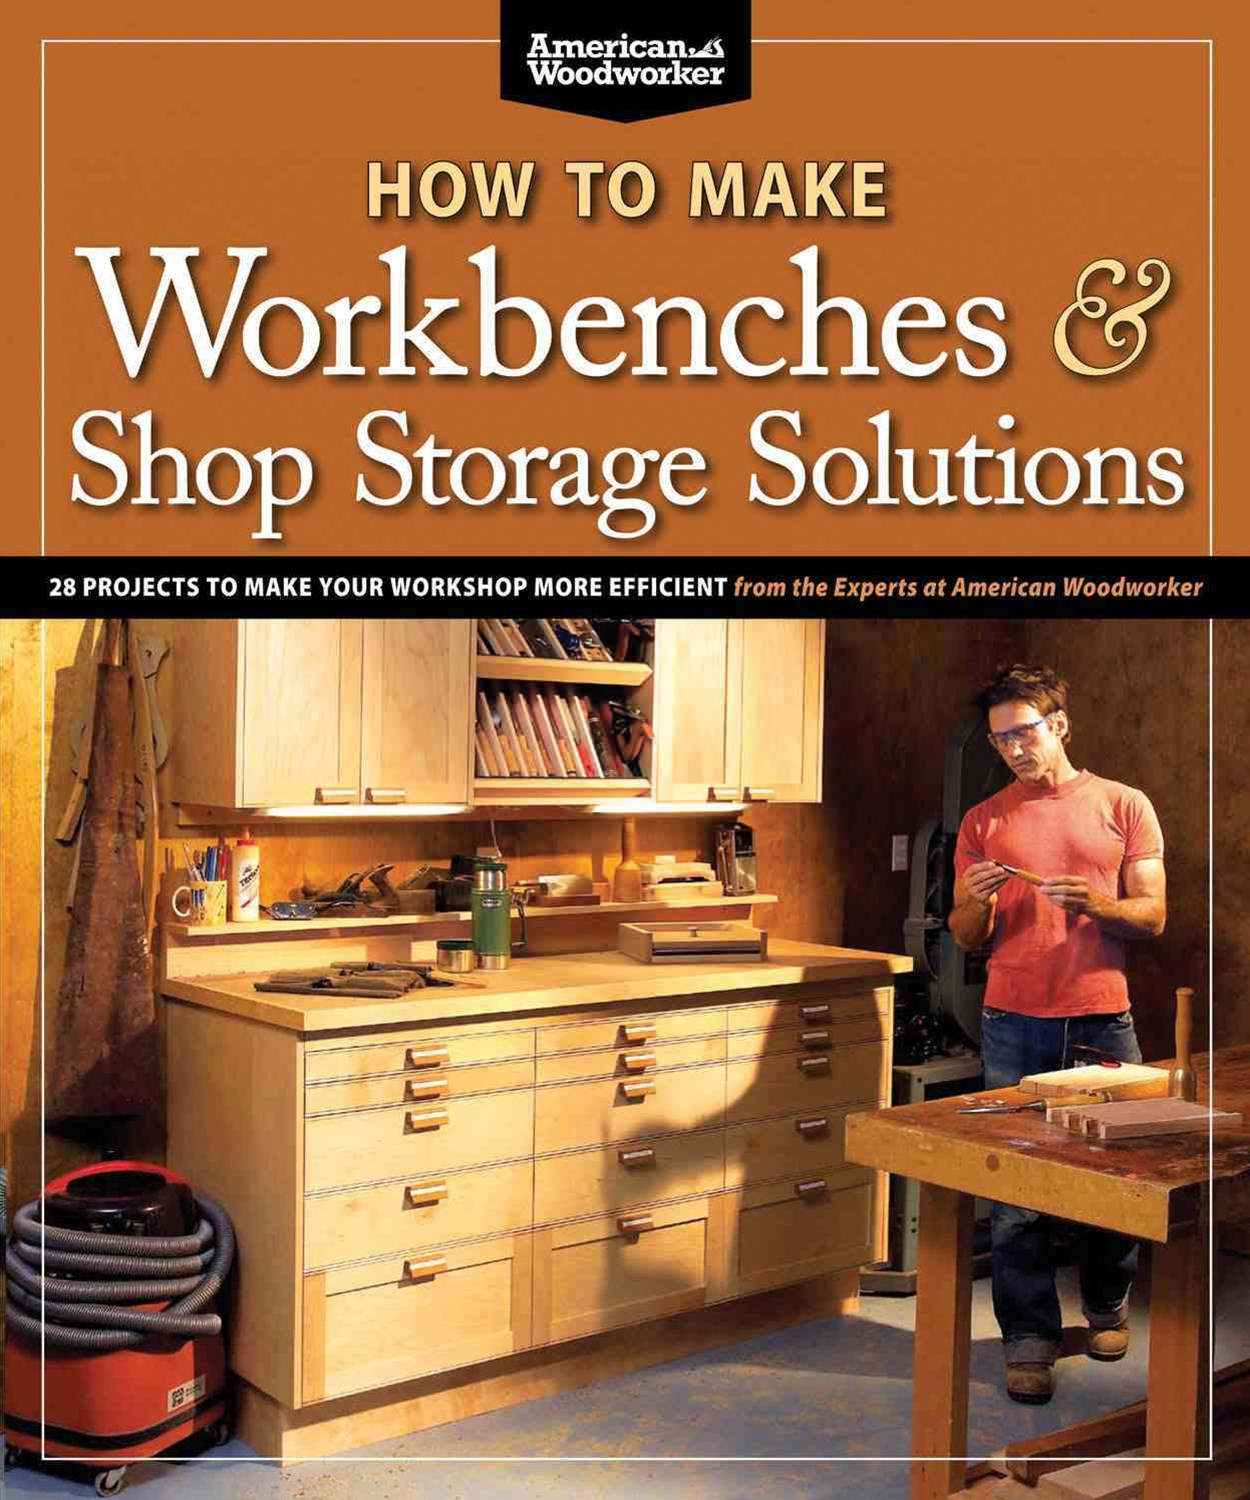 How to Make Workbenches and Shop Storage Solutions